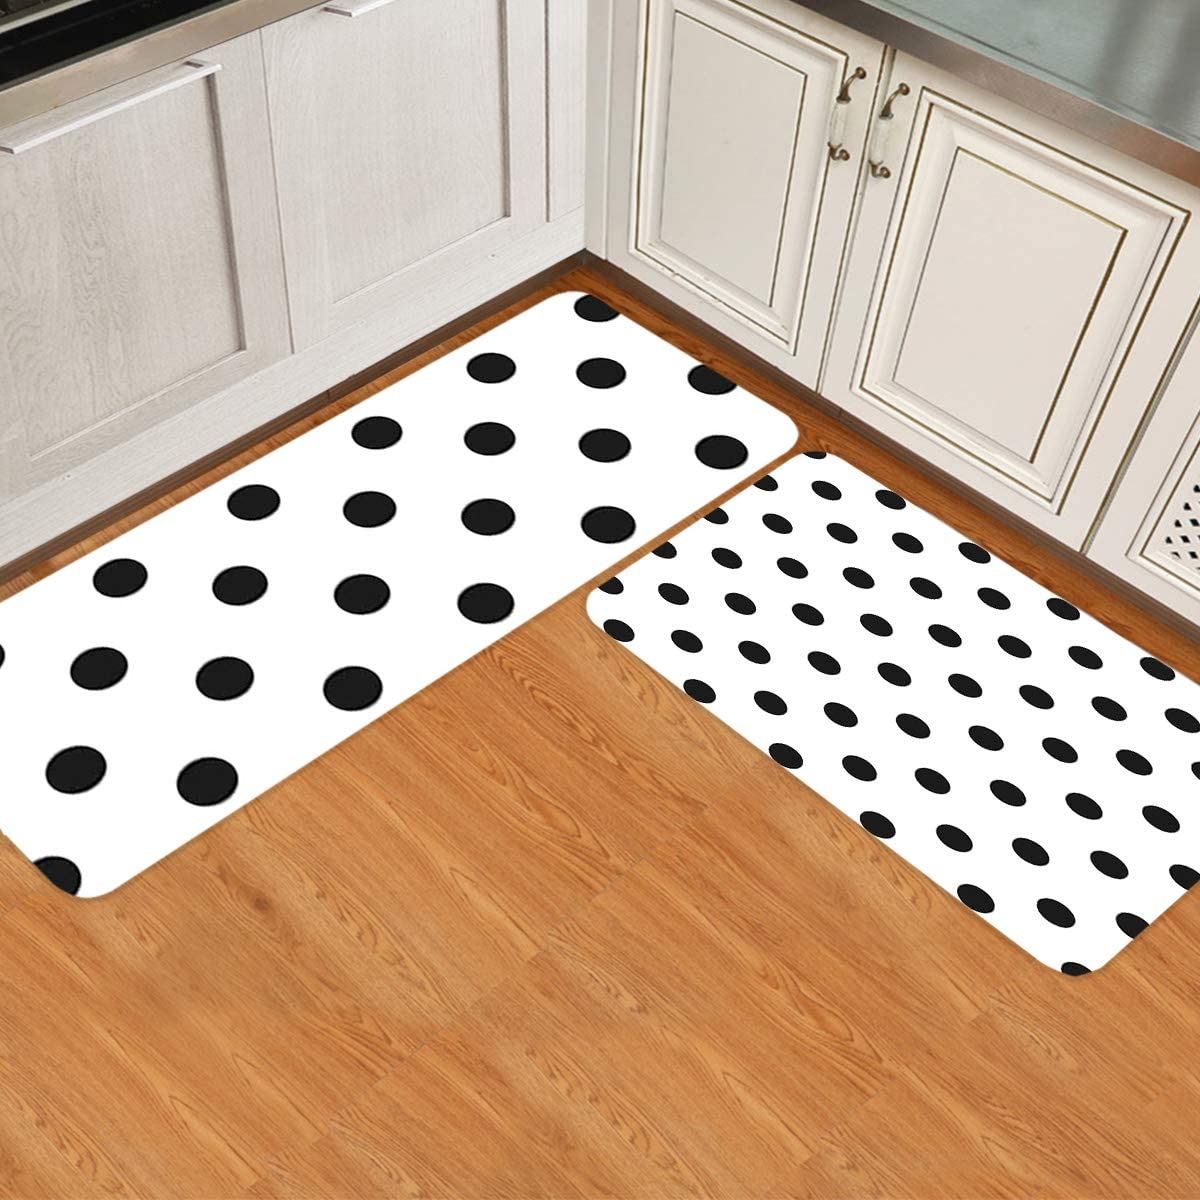 ARTSHOWING Modern Kitchen Rugs and Mats D Set Non 2 of Manufacturer service direct delivery Slip